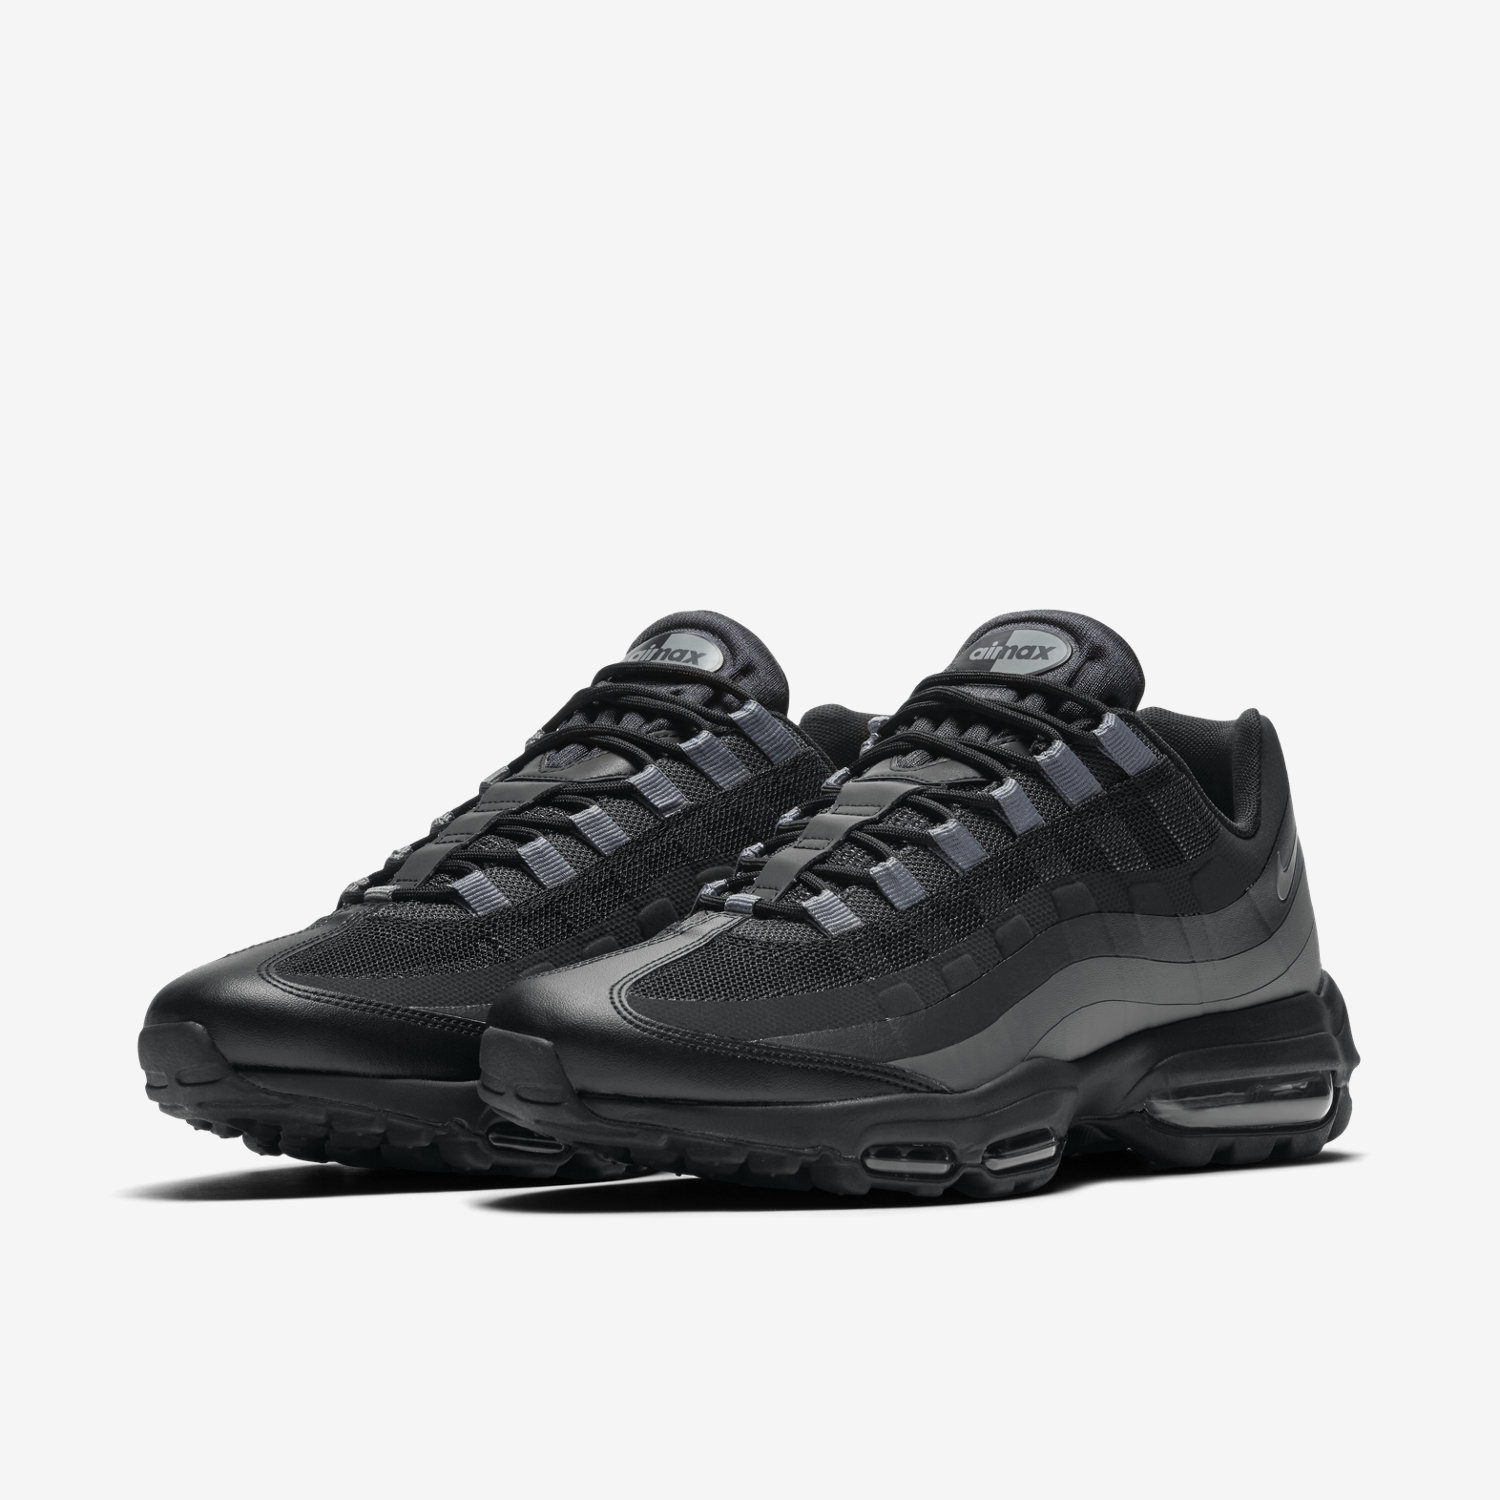 uk availability d8913 9ba95 Nike Air Max 95 Ultra Essential minmage.nu